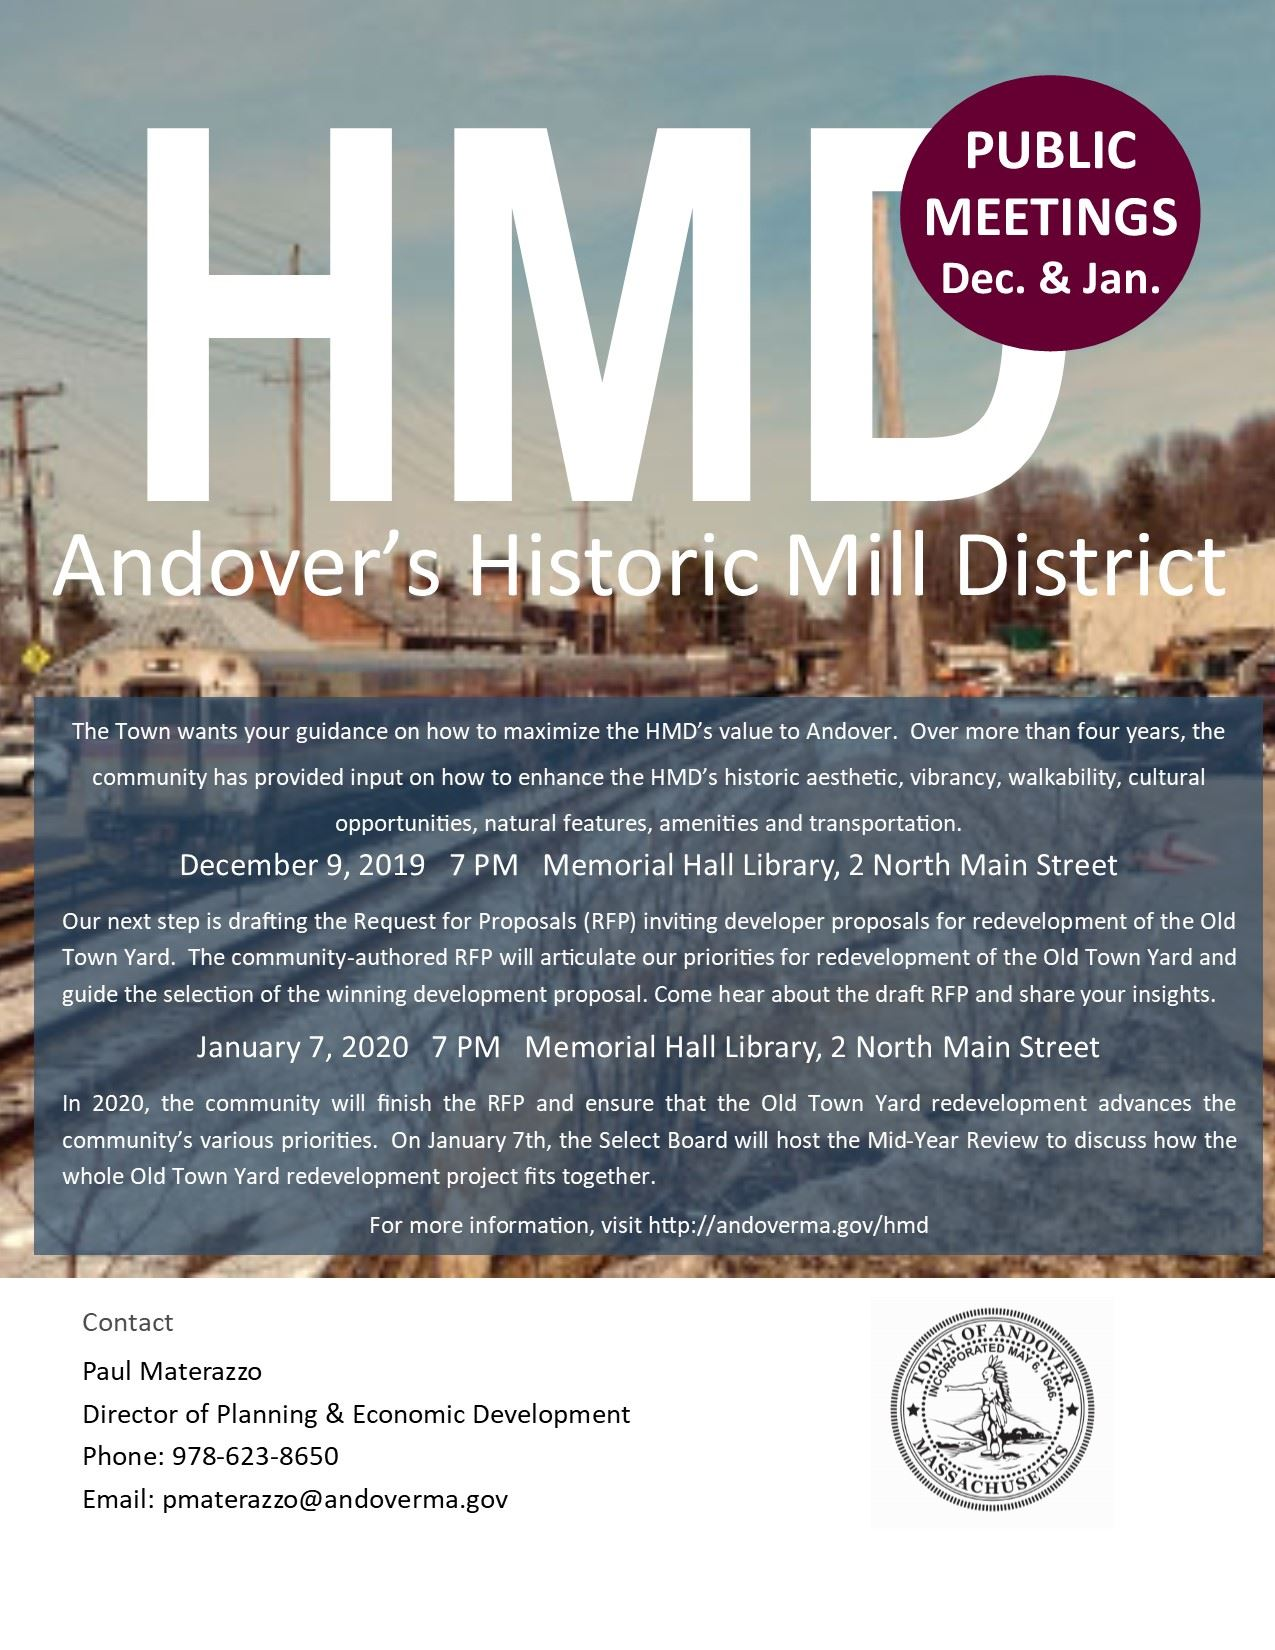 Historic Mill District Public Forums December 2019 and January 2020